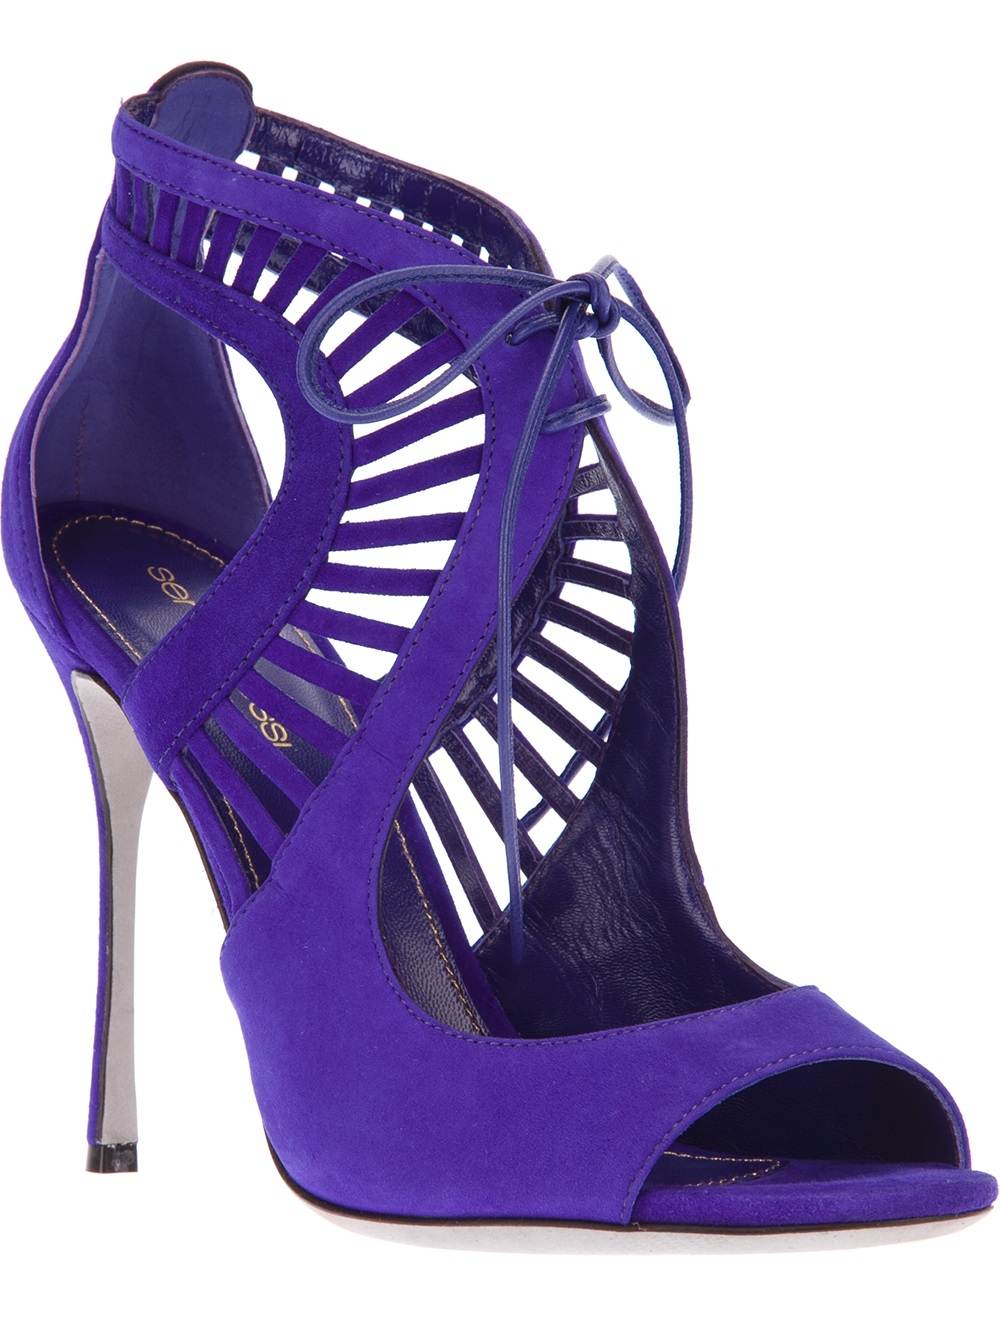 Sergio Rossi Gated Laceup Sandals In Purple Lyst